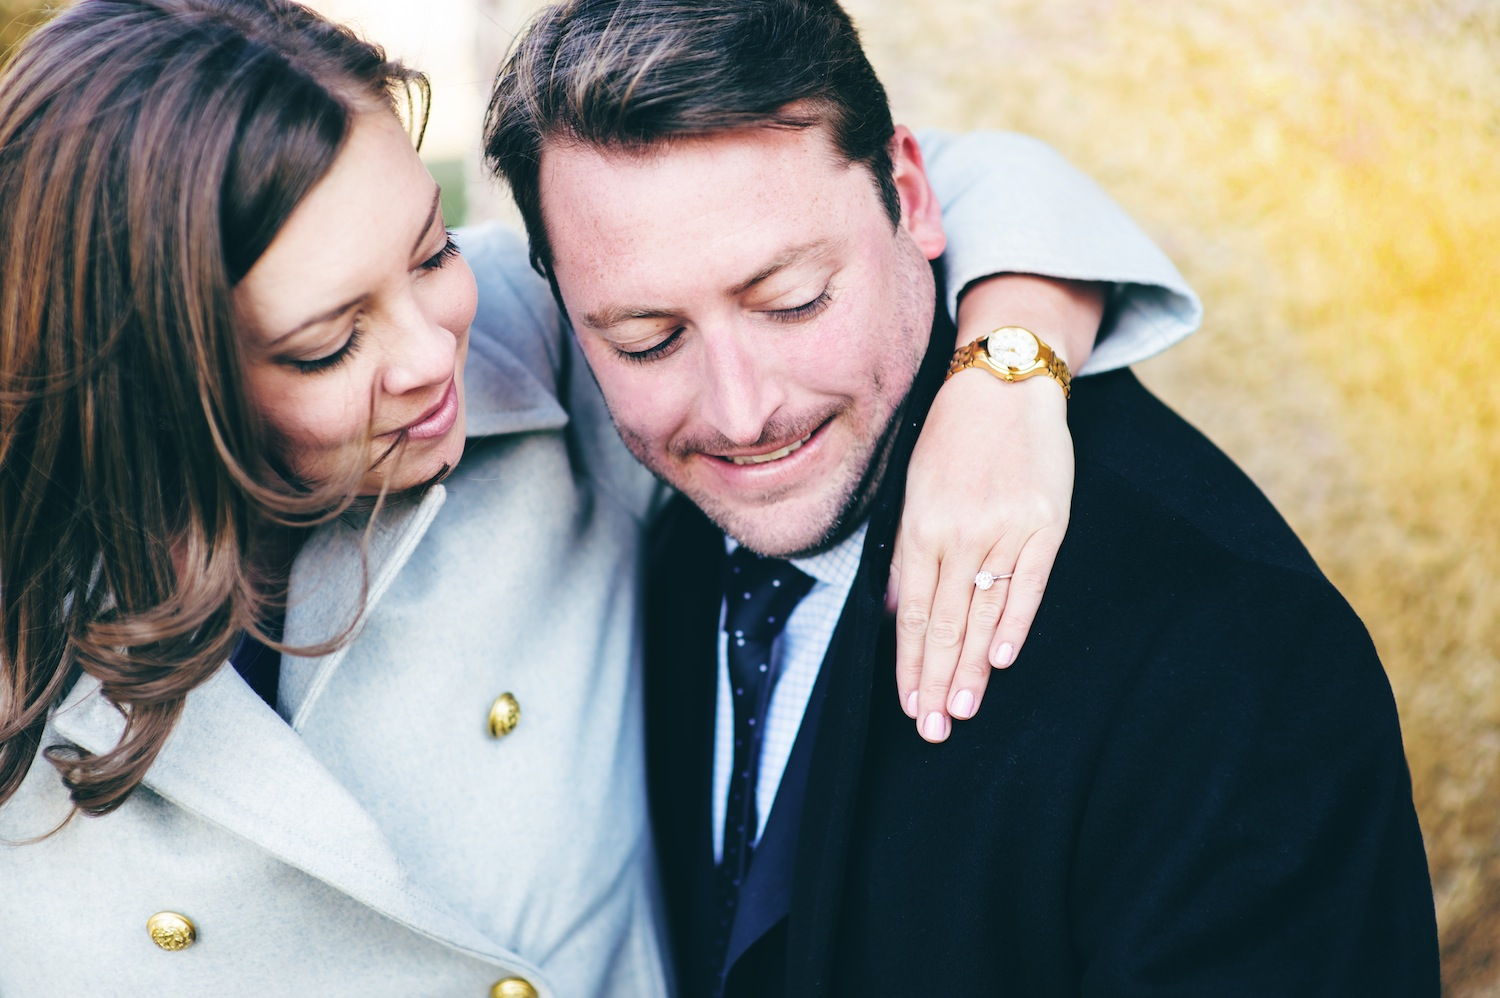 Alison and Brian – NY Engagement Photography Highlights from Astoria Park in Queens